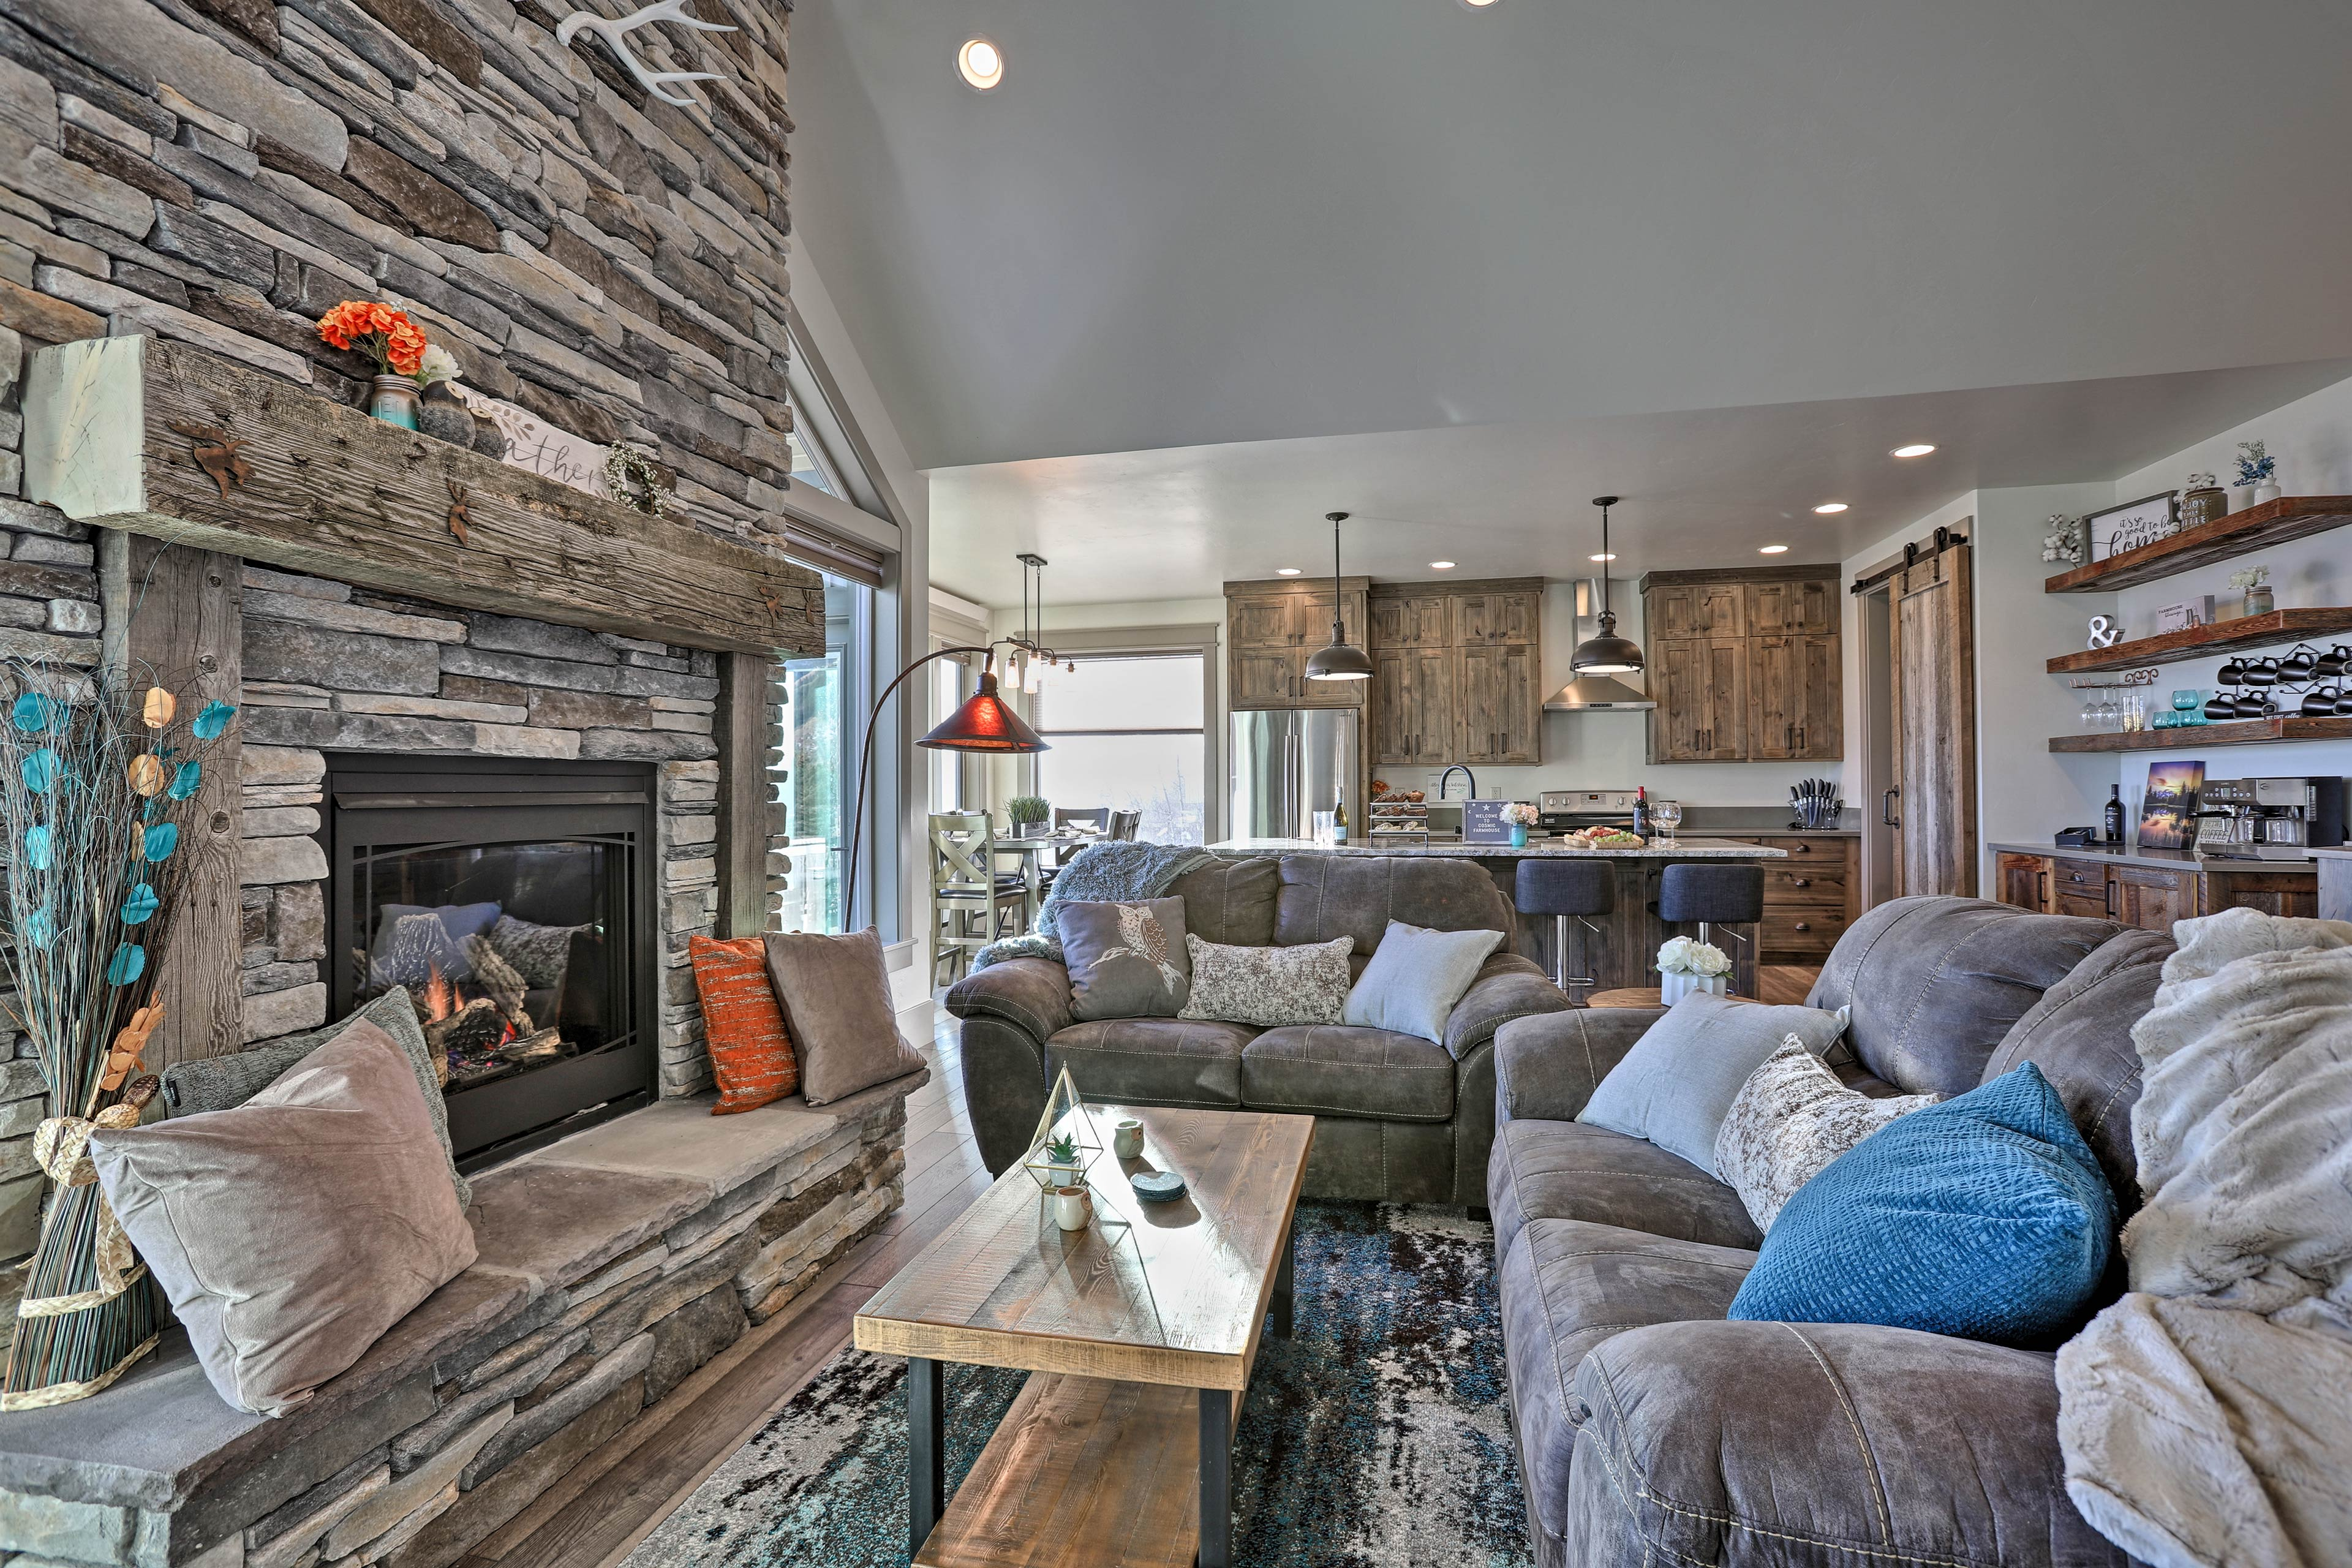 Get cozy in front of the grandiose gas fireplace.